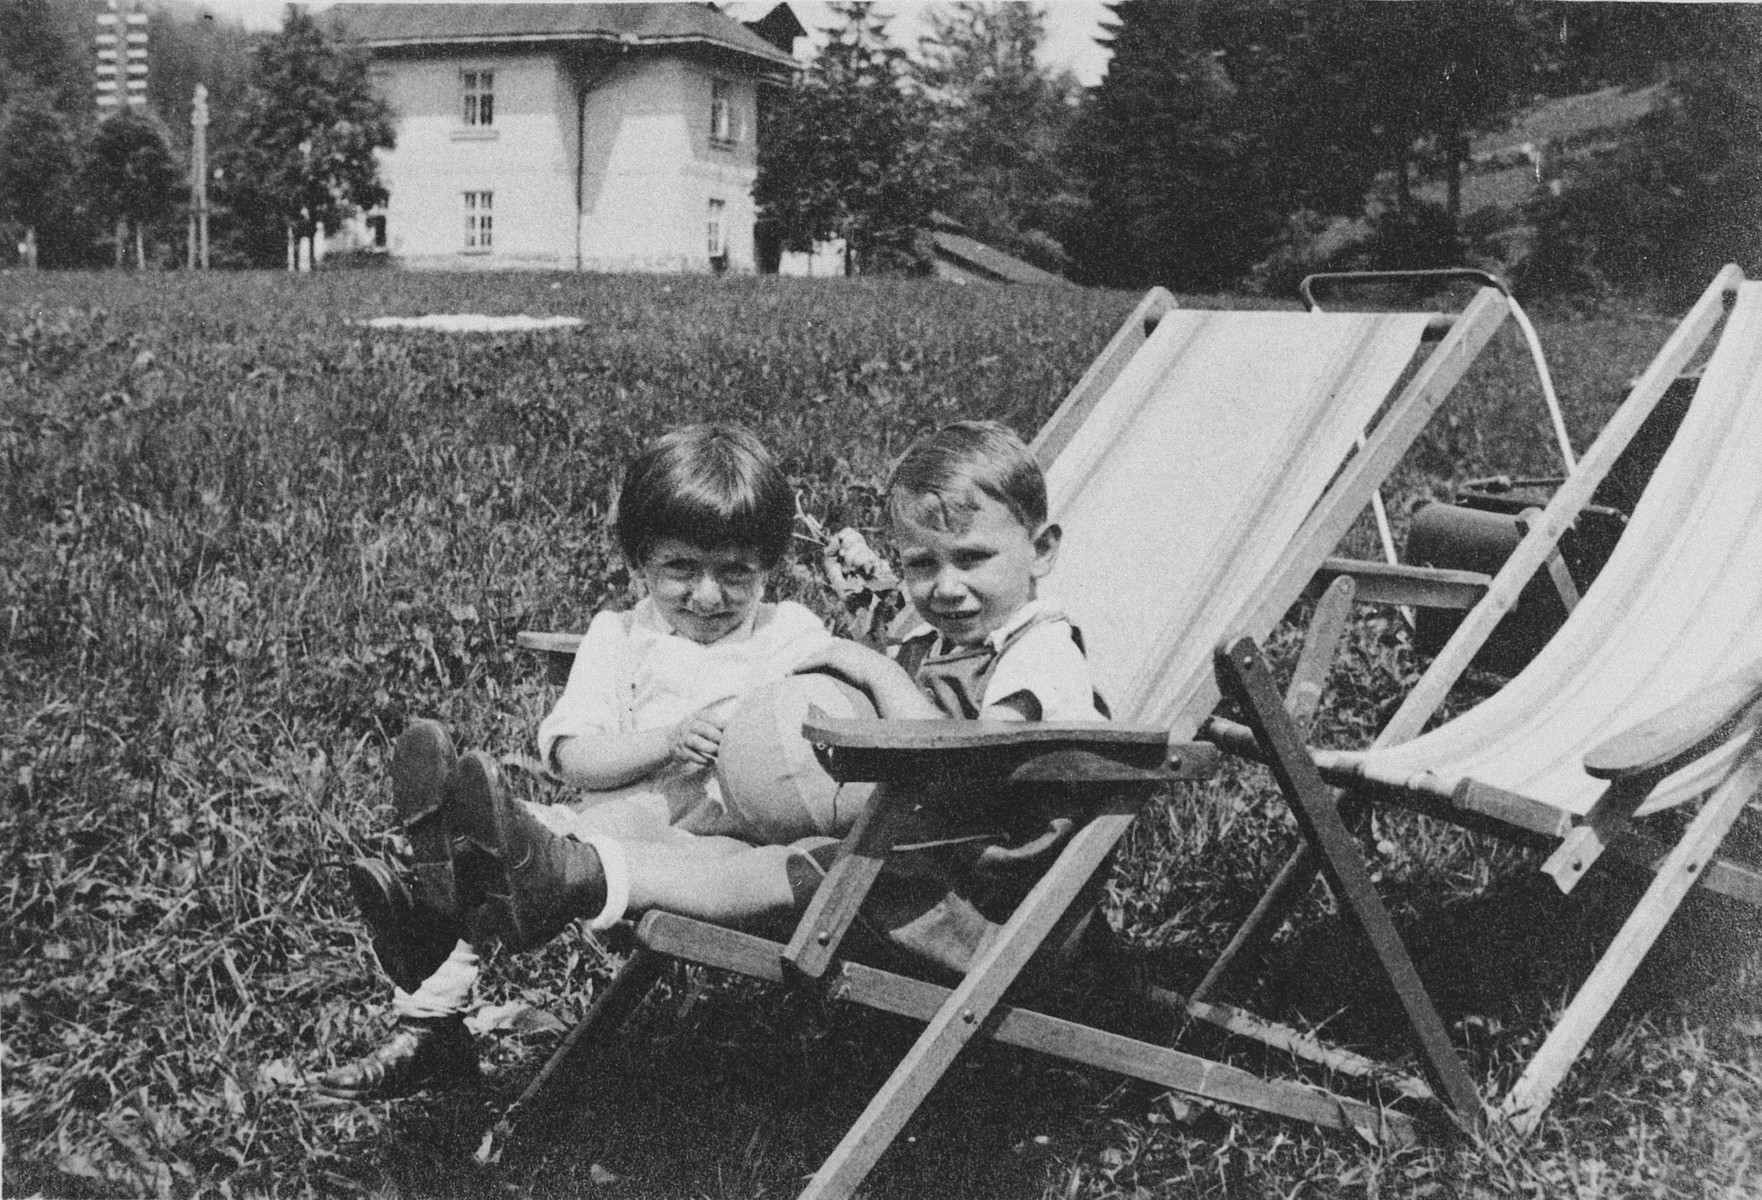 Two young children sit next to each other on canvas lawn chairs on a grassy field.  Pictured on the left is Misa Grunbaum.